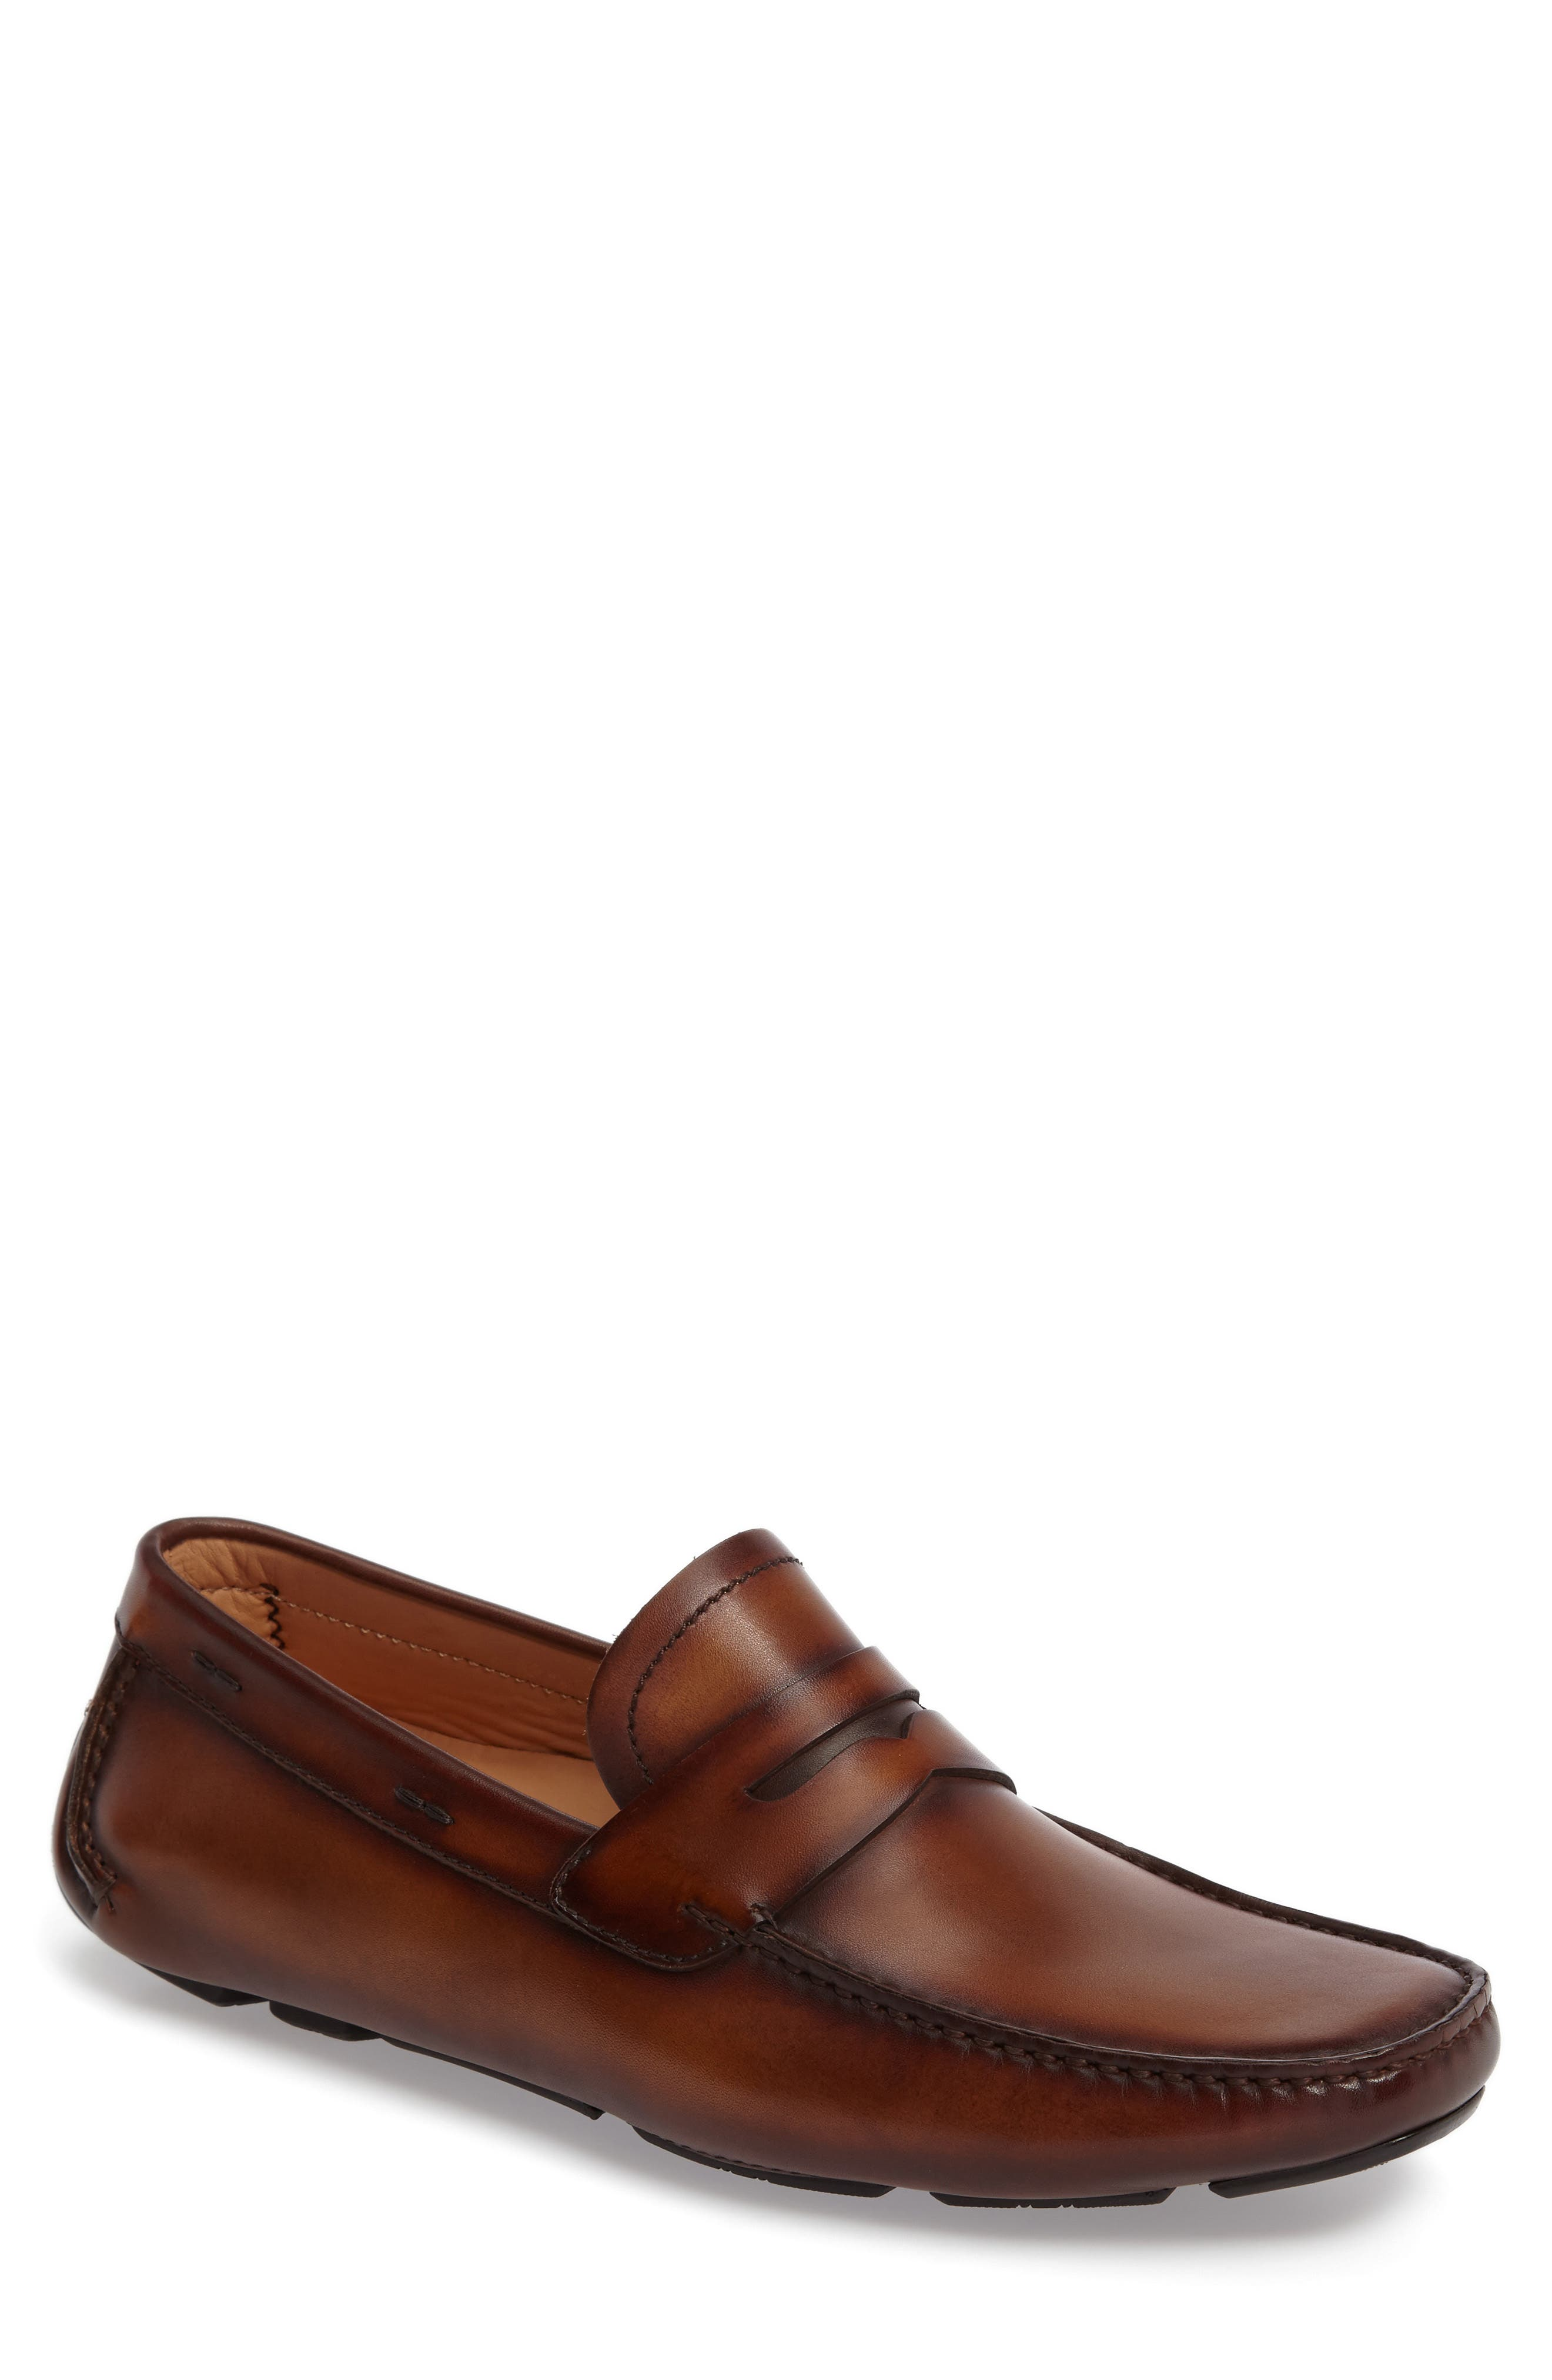 'Dylan' Leather Driving Shoe,                             Main thumbnail 5, color,